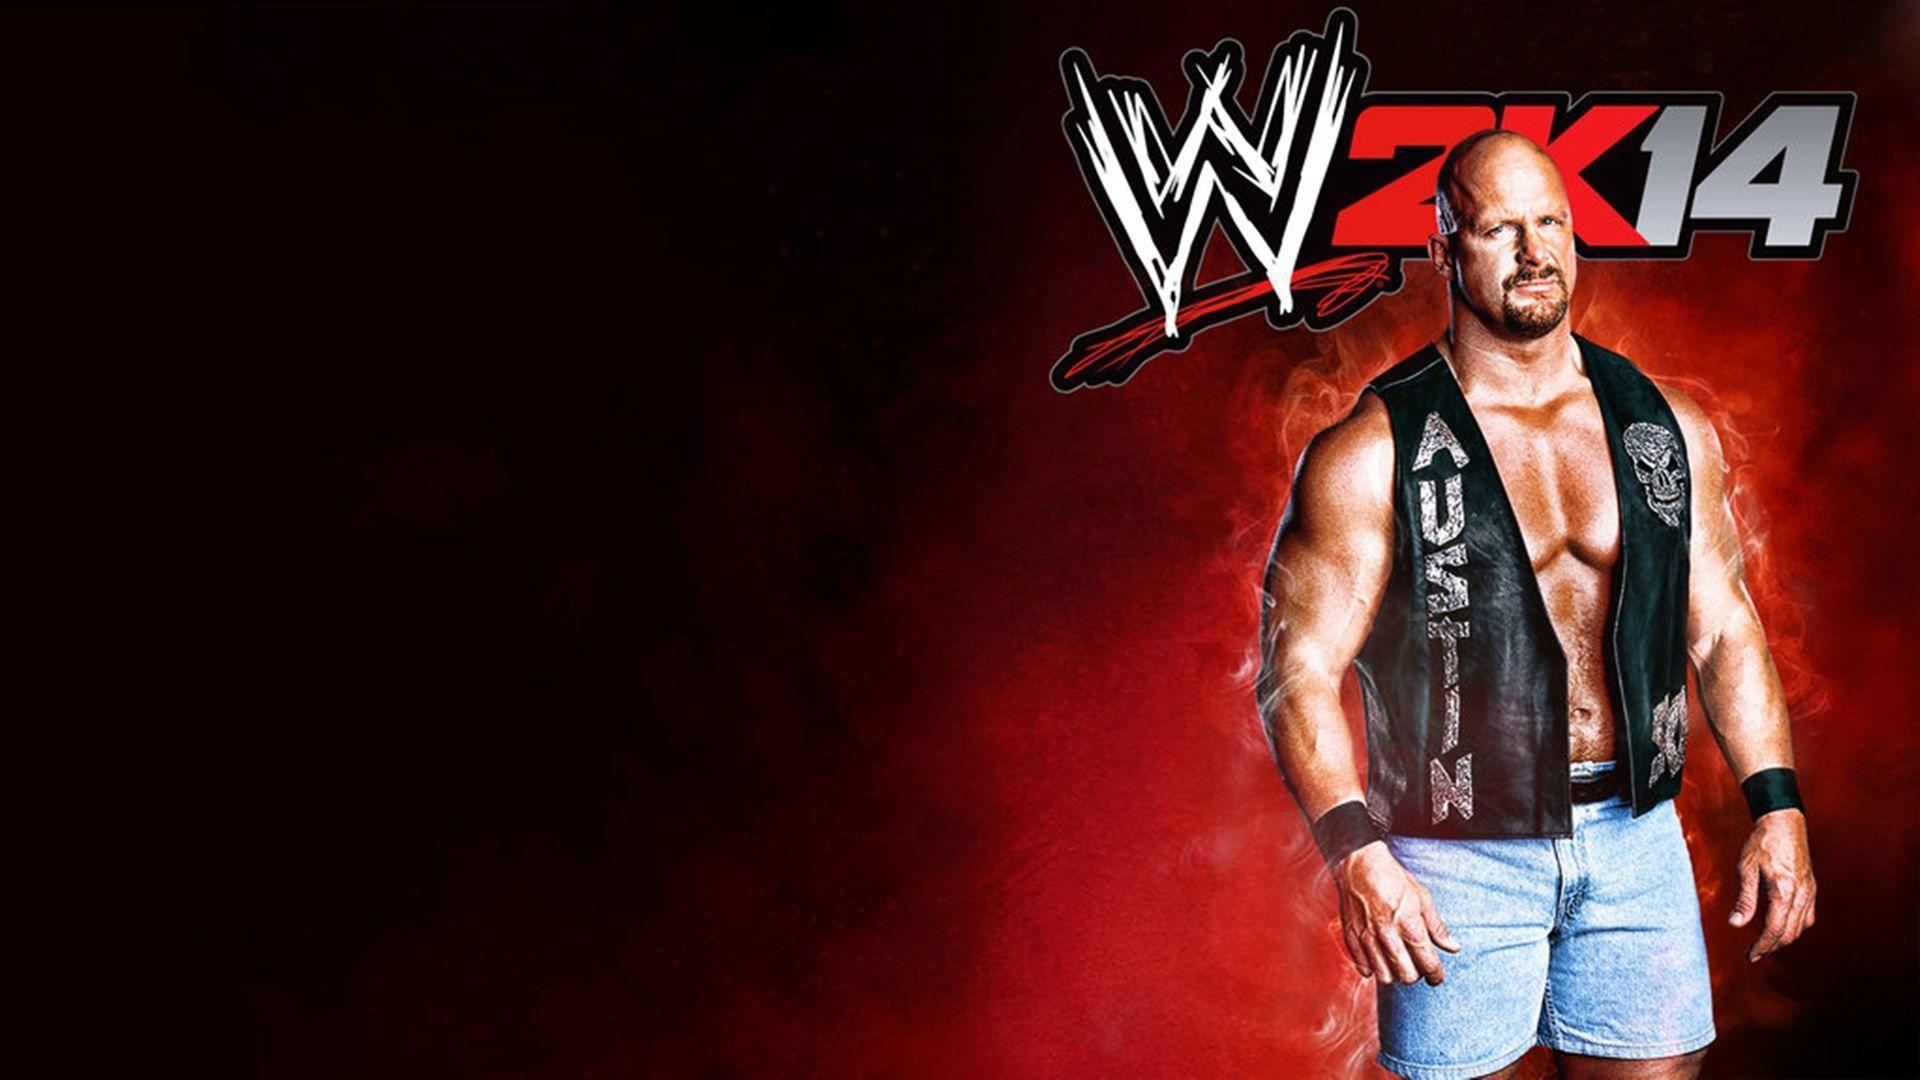 Stone Cold Wallpapers 1920x1080